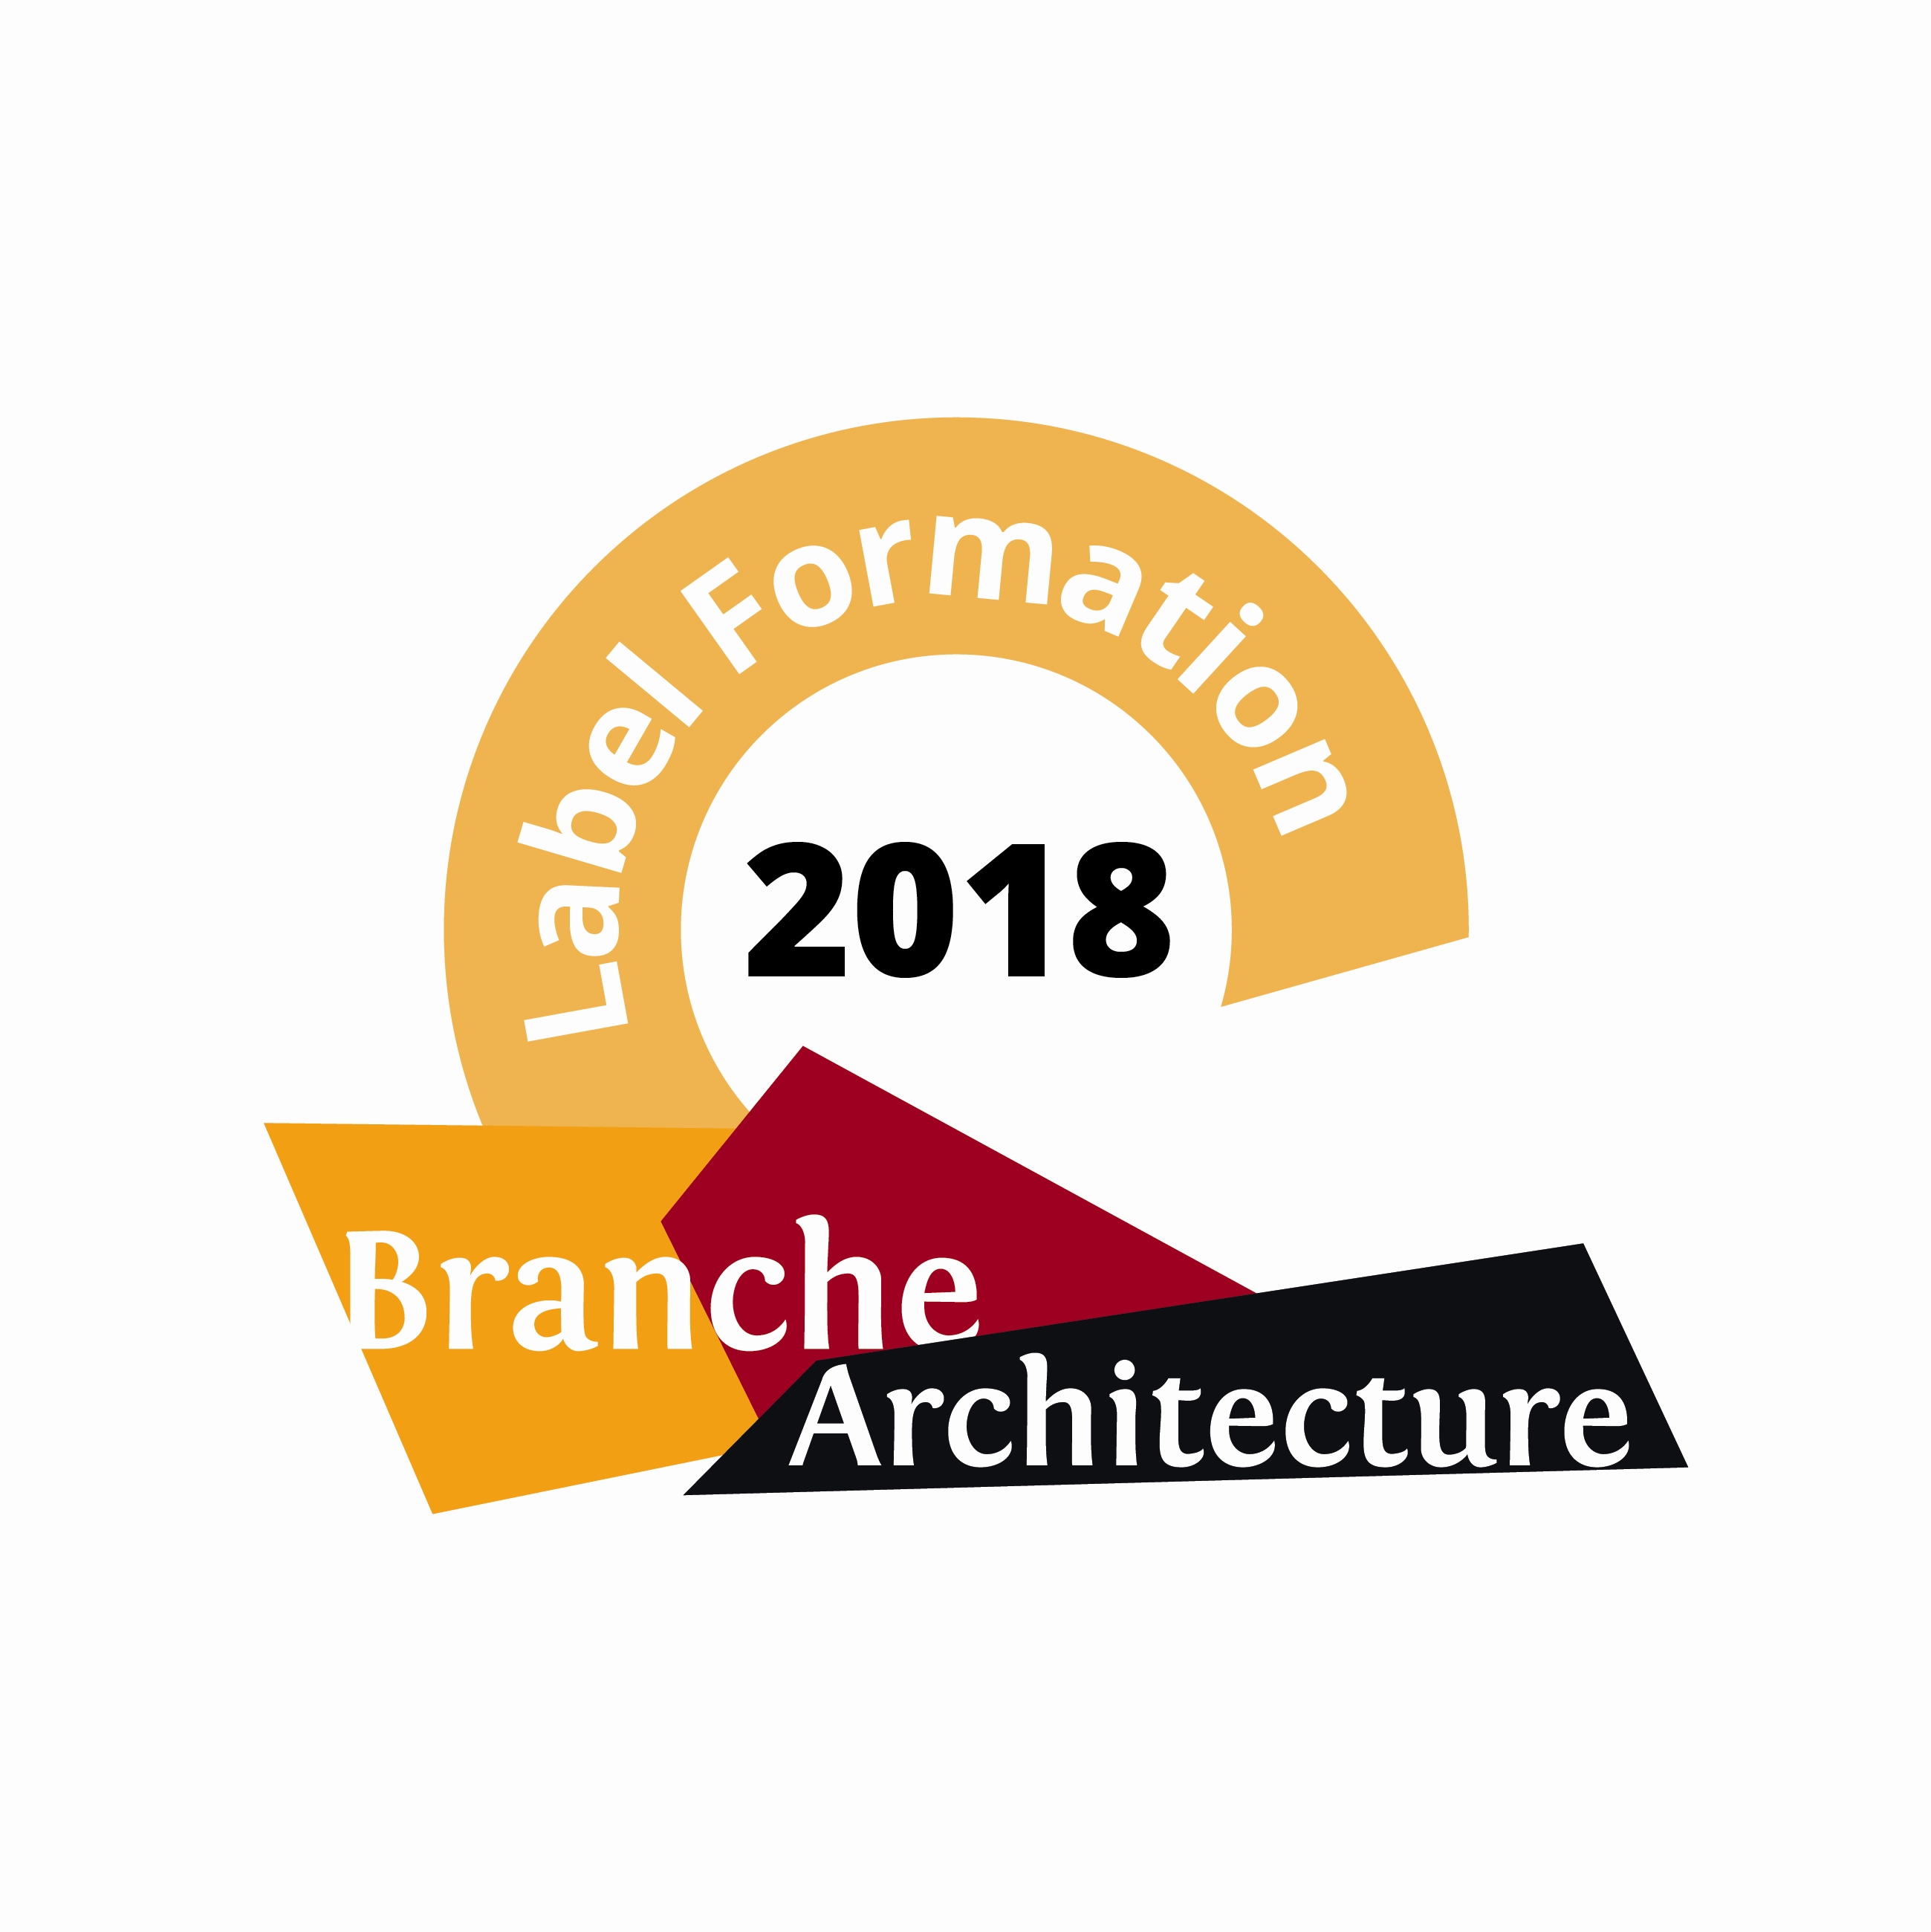 Label Formation 2018 Branche Architecture